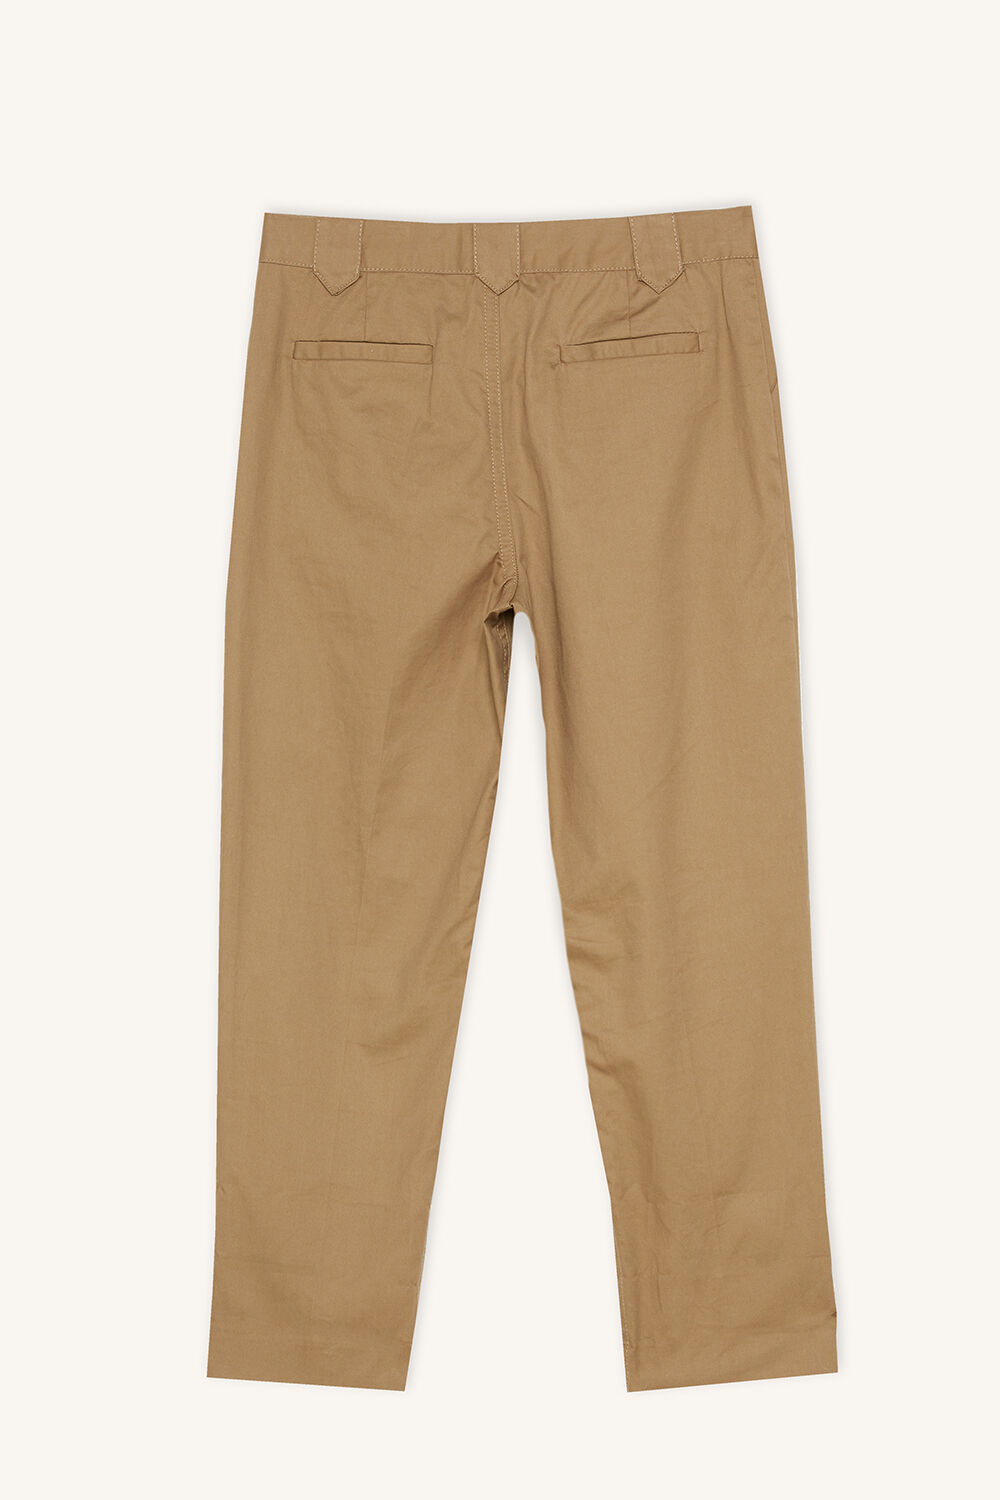 JUNIOR BOY THE UTILITY PANT in colour COVERT GREEN